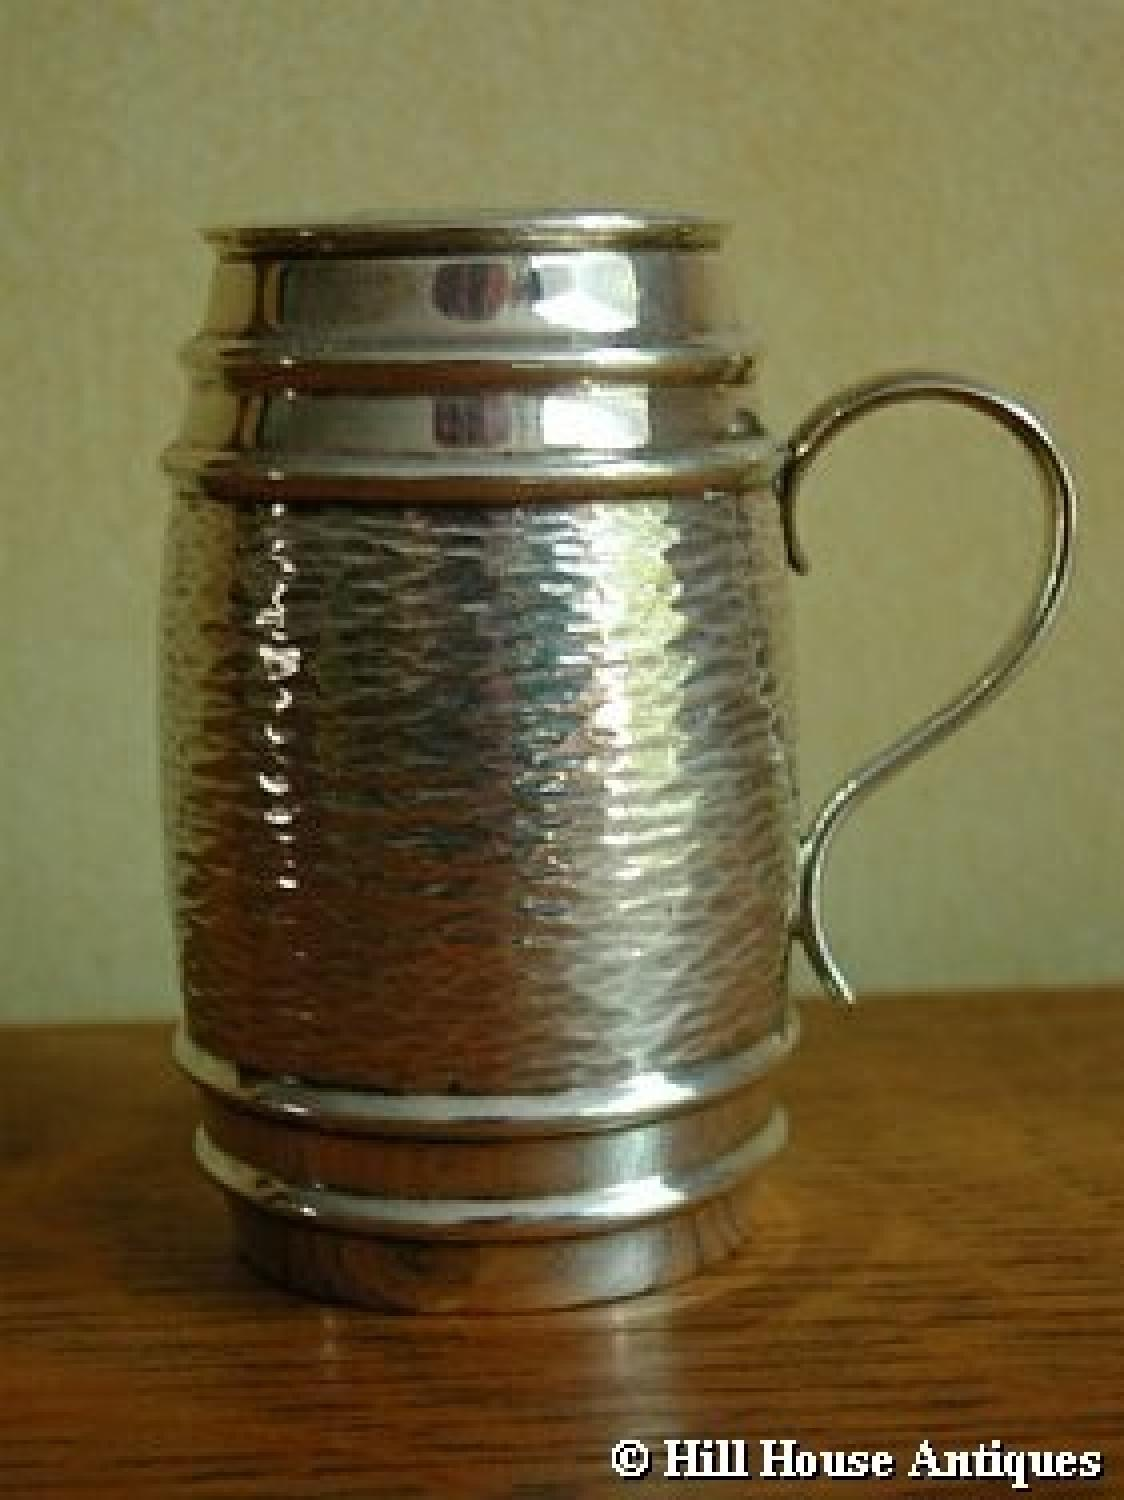 Hukin & Heath silver sugar shaker